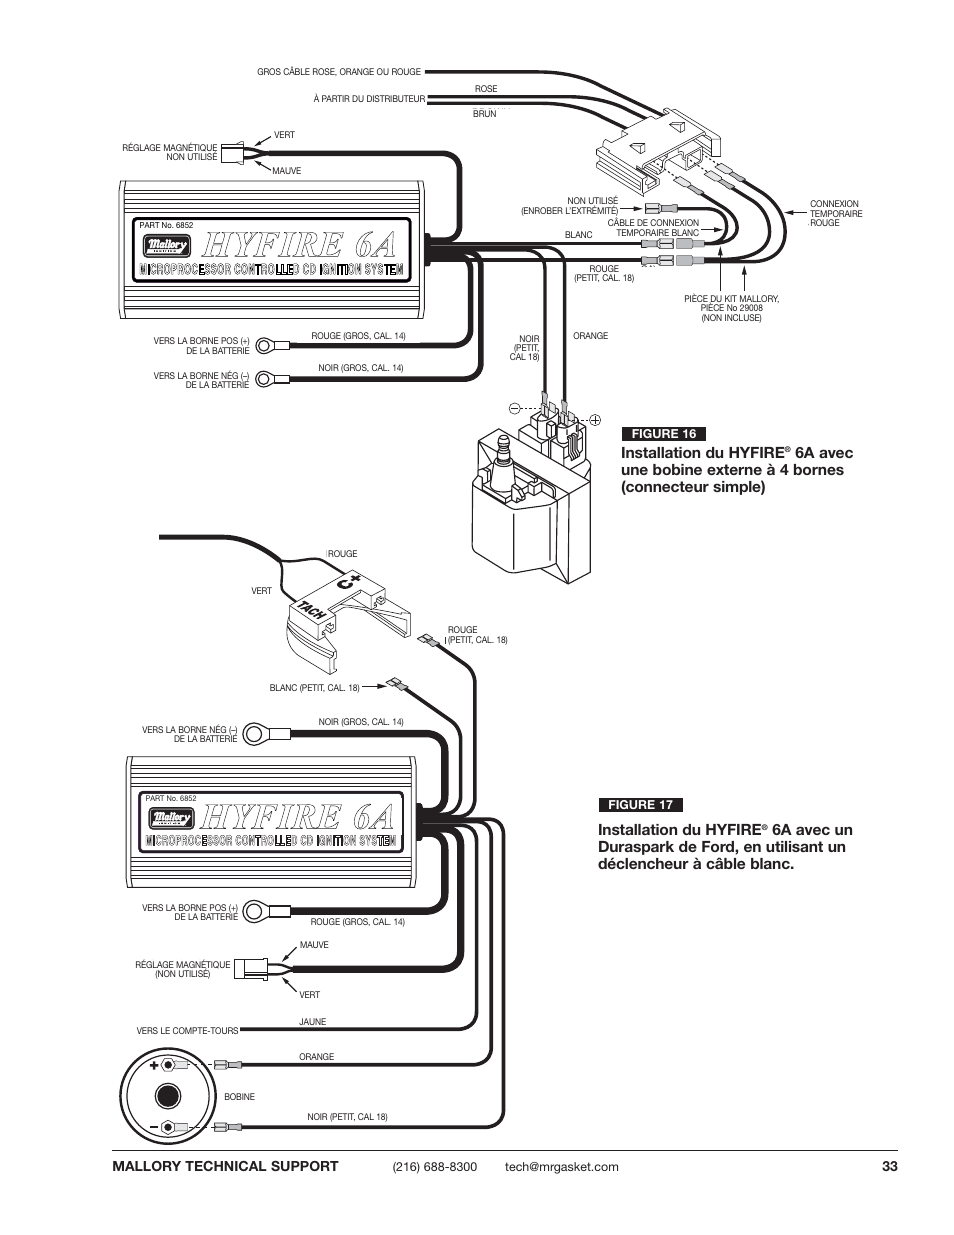 Mallory Ignition Hyfire Wiring Diagram - Wiring Diagrams on